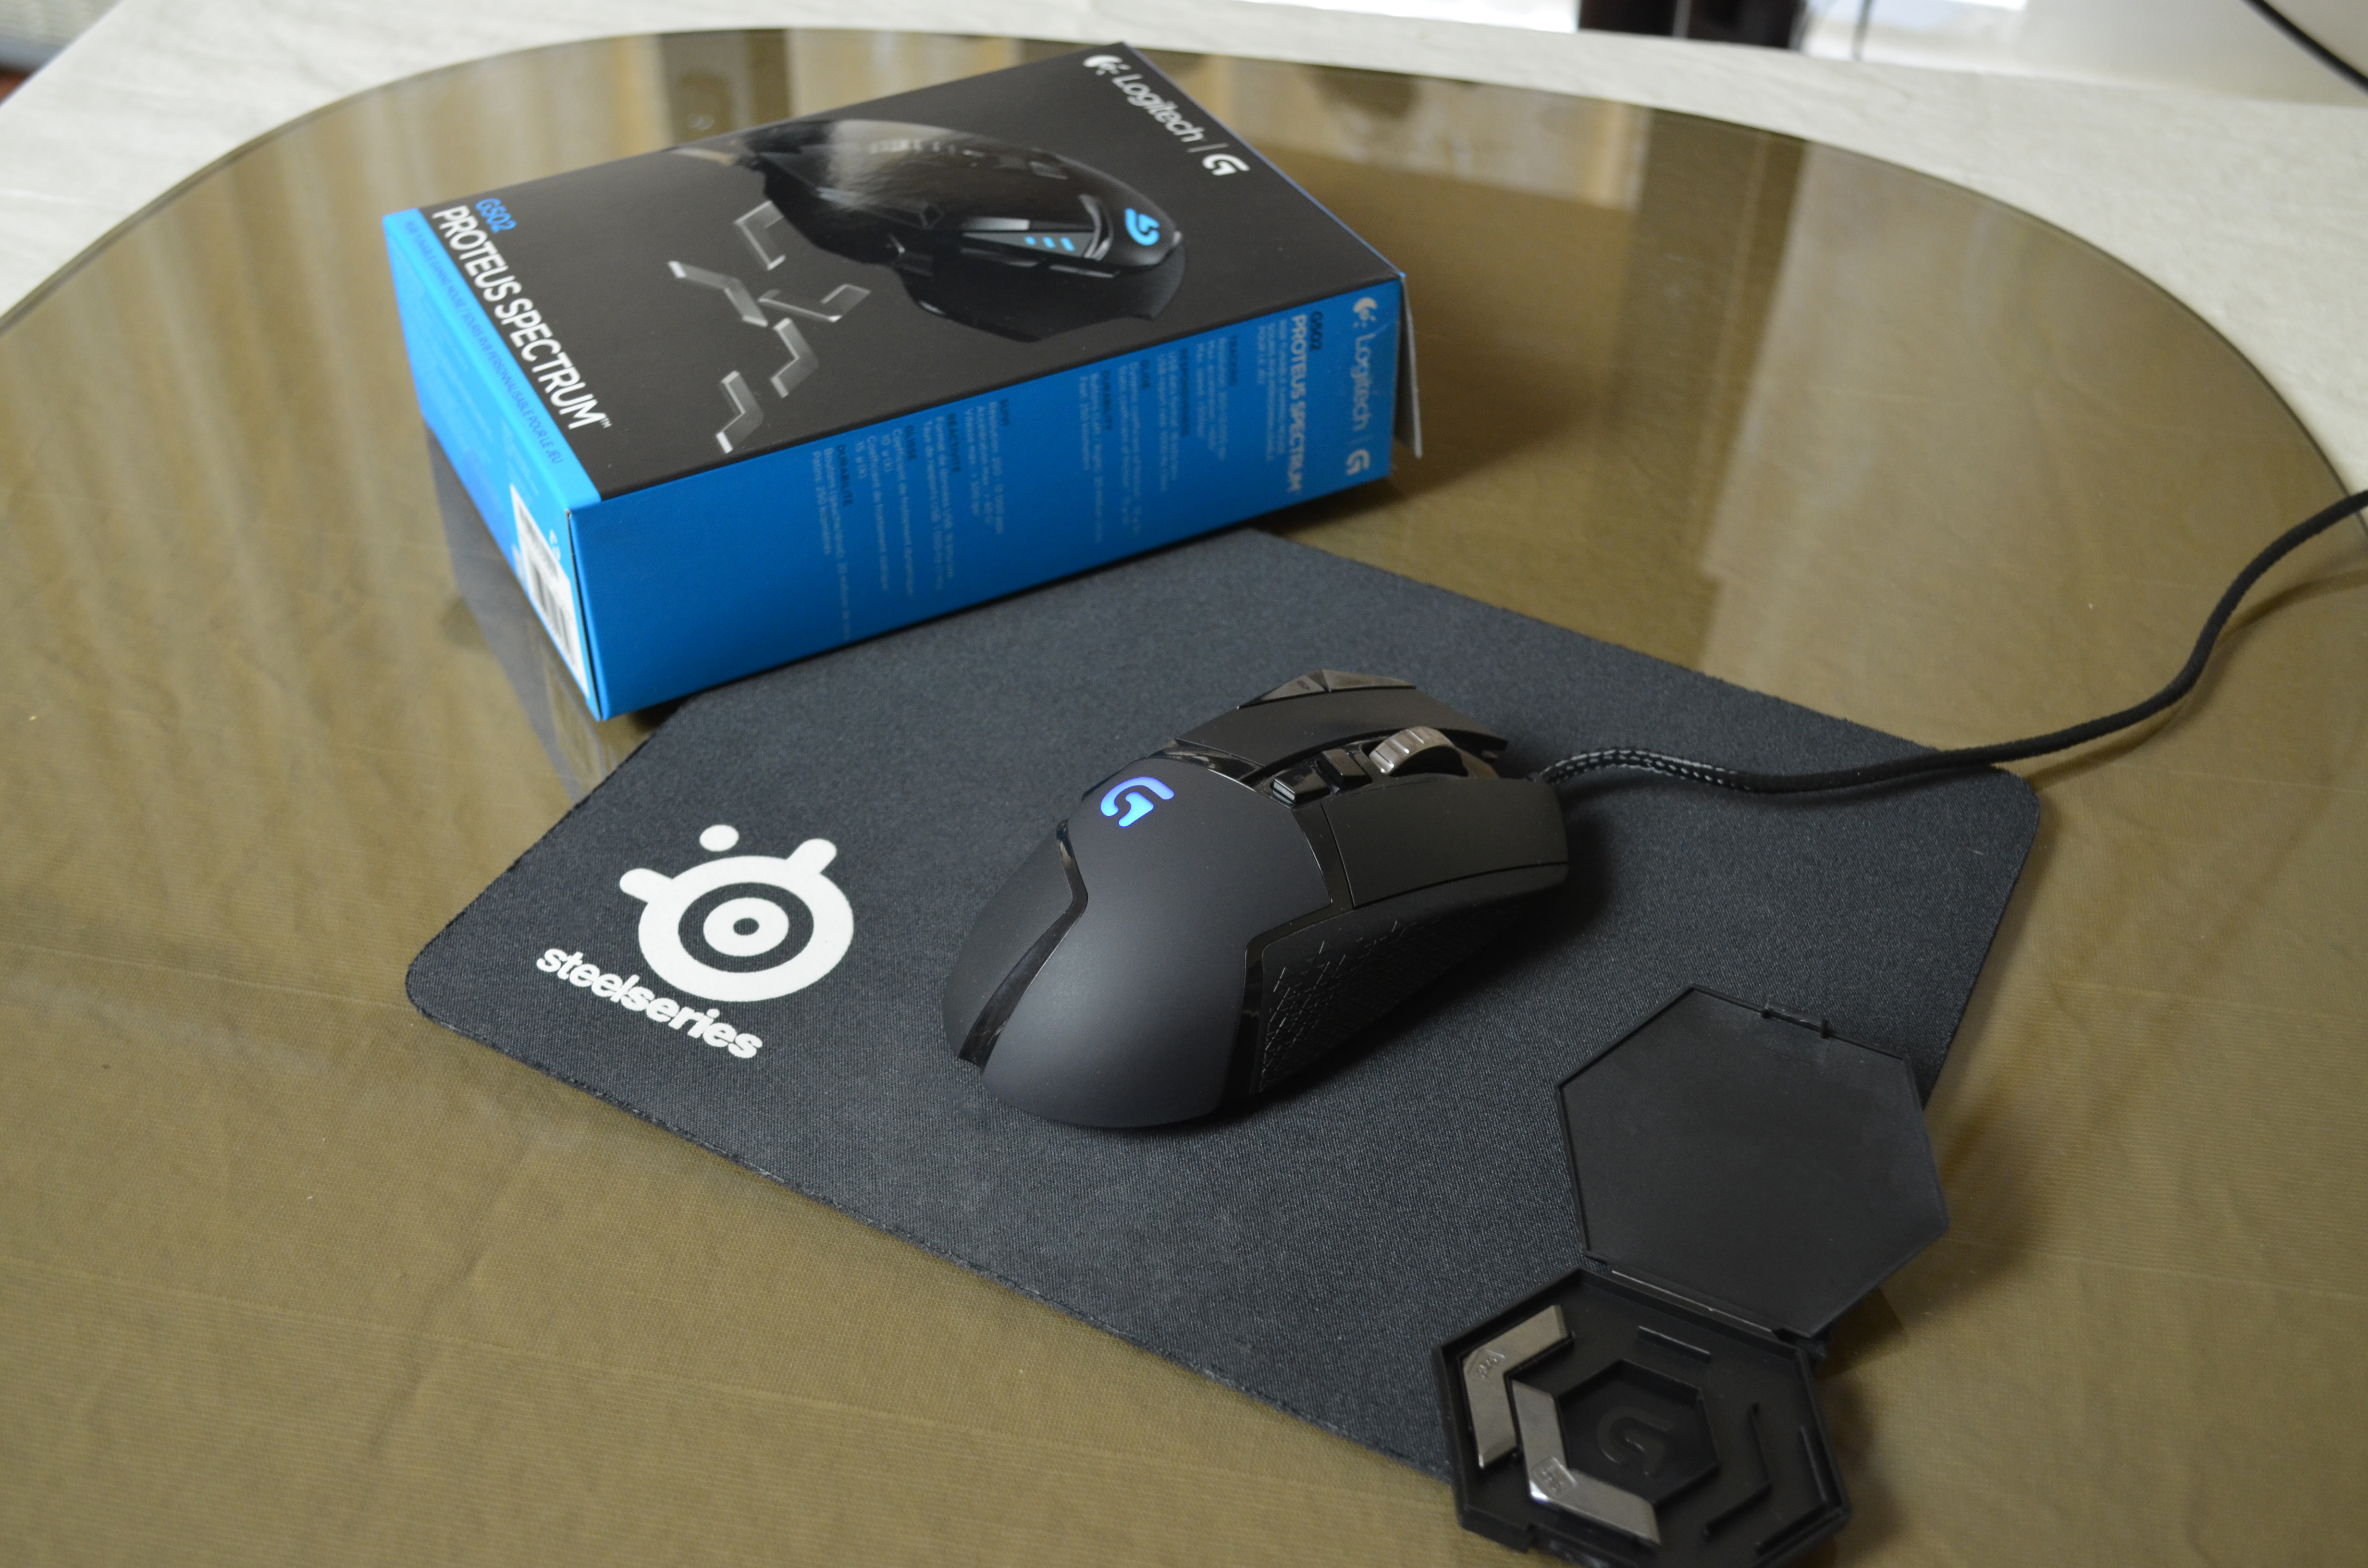 0fb5c51ff67 Logitech G502 Proteus Spectrum RGB Tunable Gaming Mouse Review - My ...